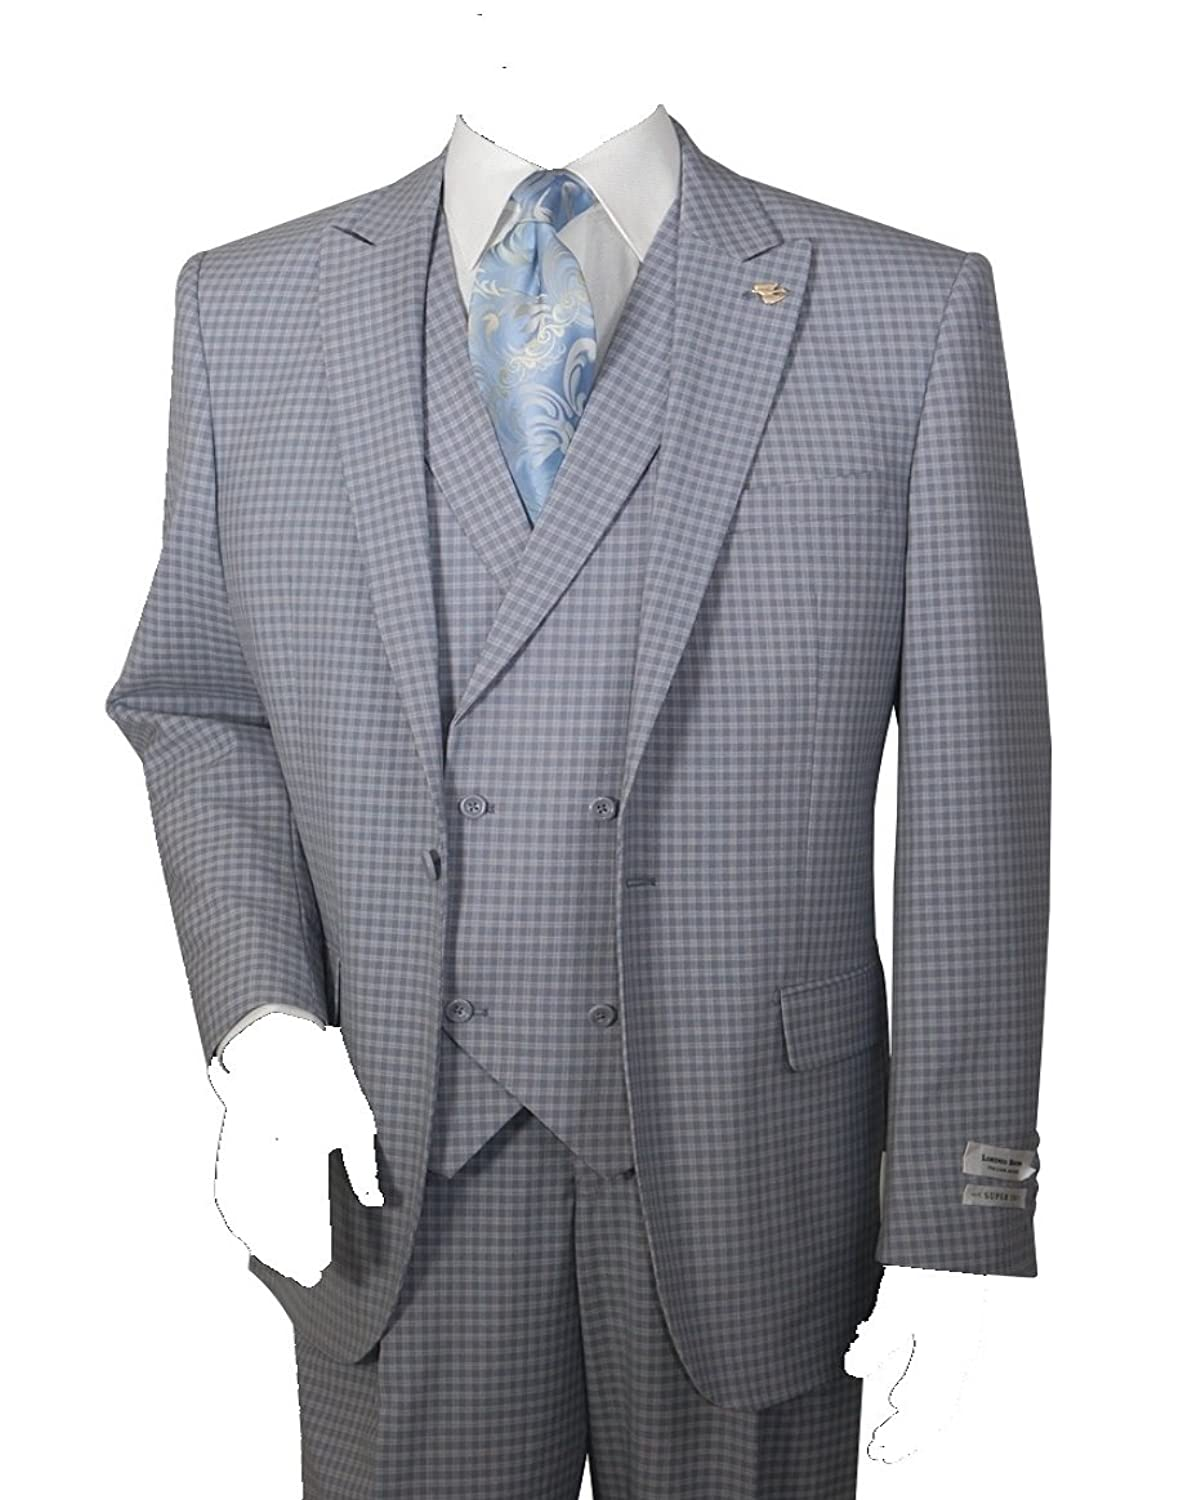 Men's Vintage Style Suits, Classic Suits Mens 3 Piece Single Button Mini-Plaid Pattern Suit (Gray) $149.00 AT vintagedancer.com